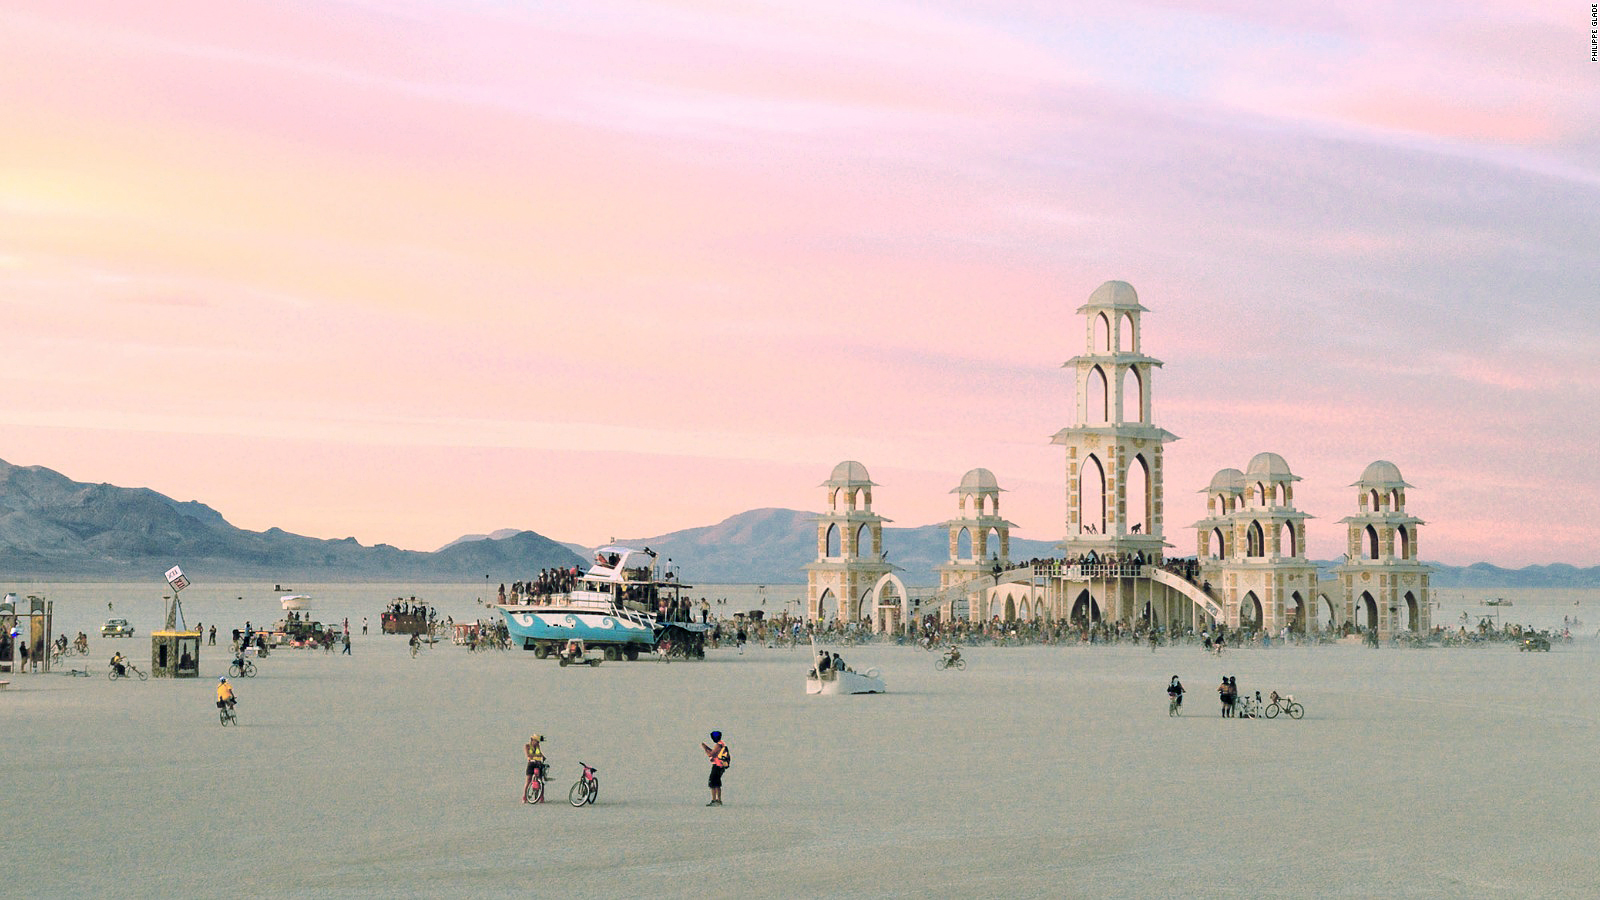 burning man-2018 Фото дня: Burning man-2018 r